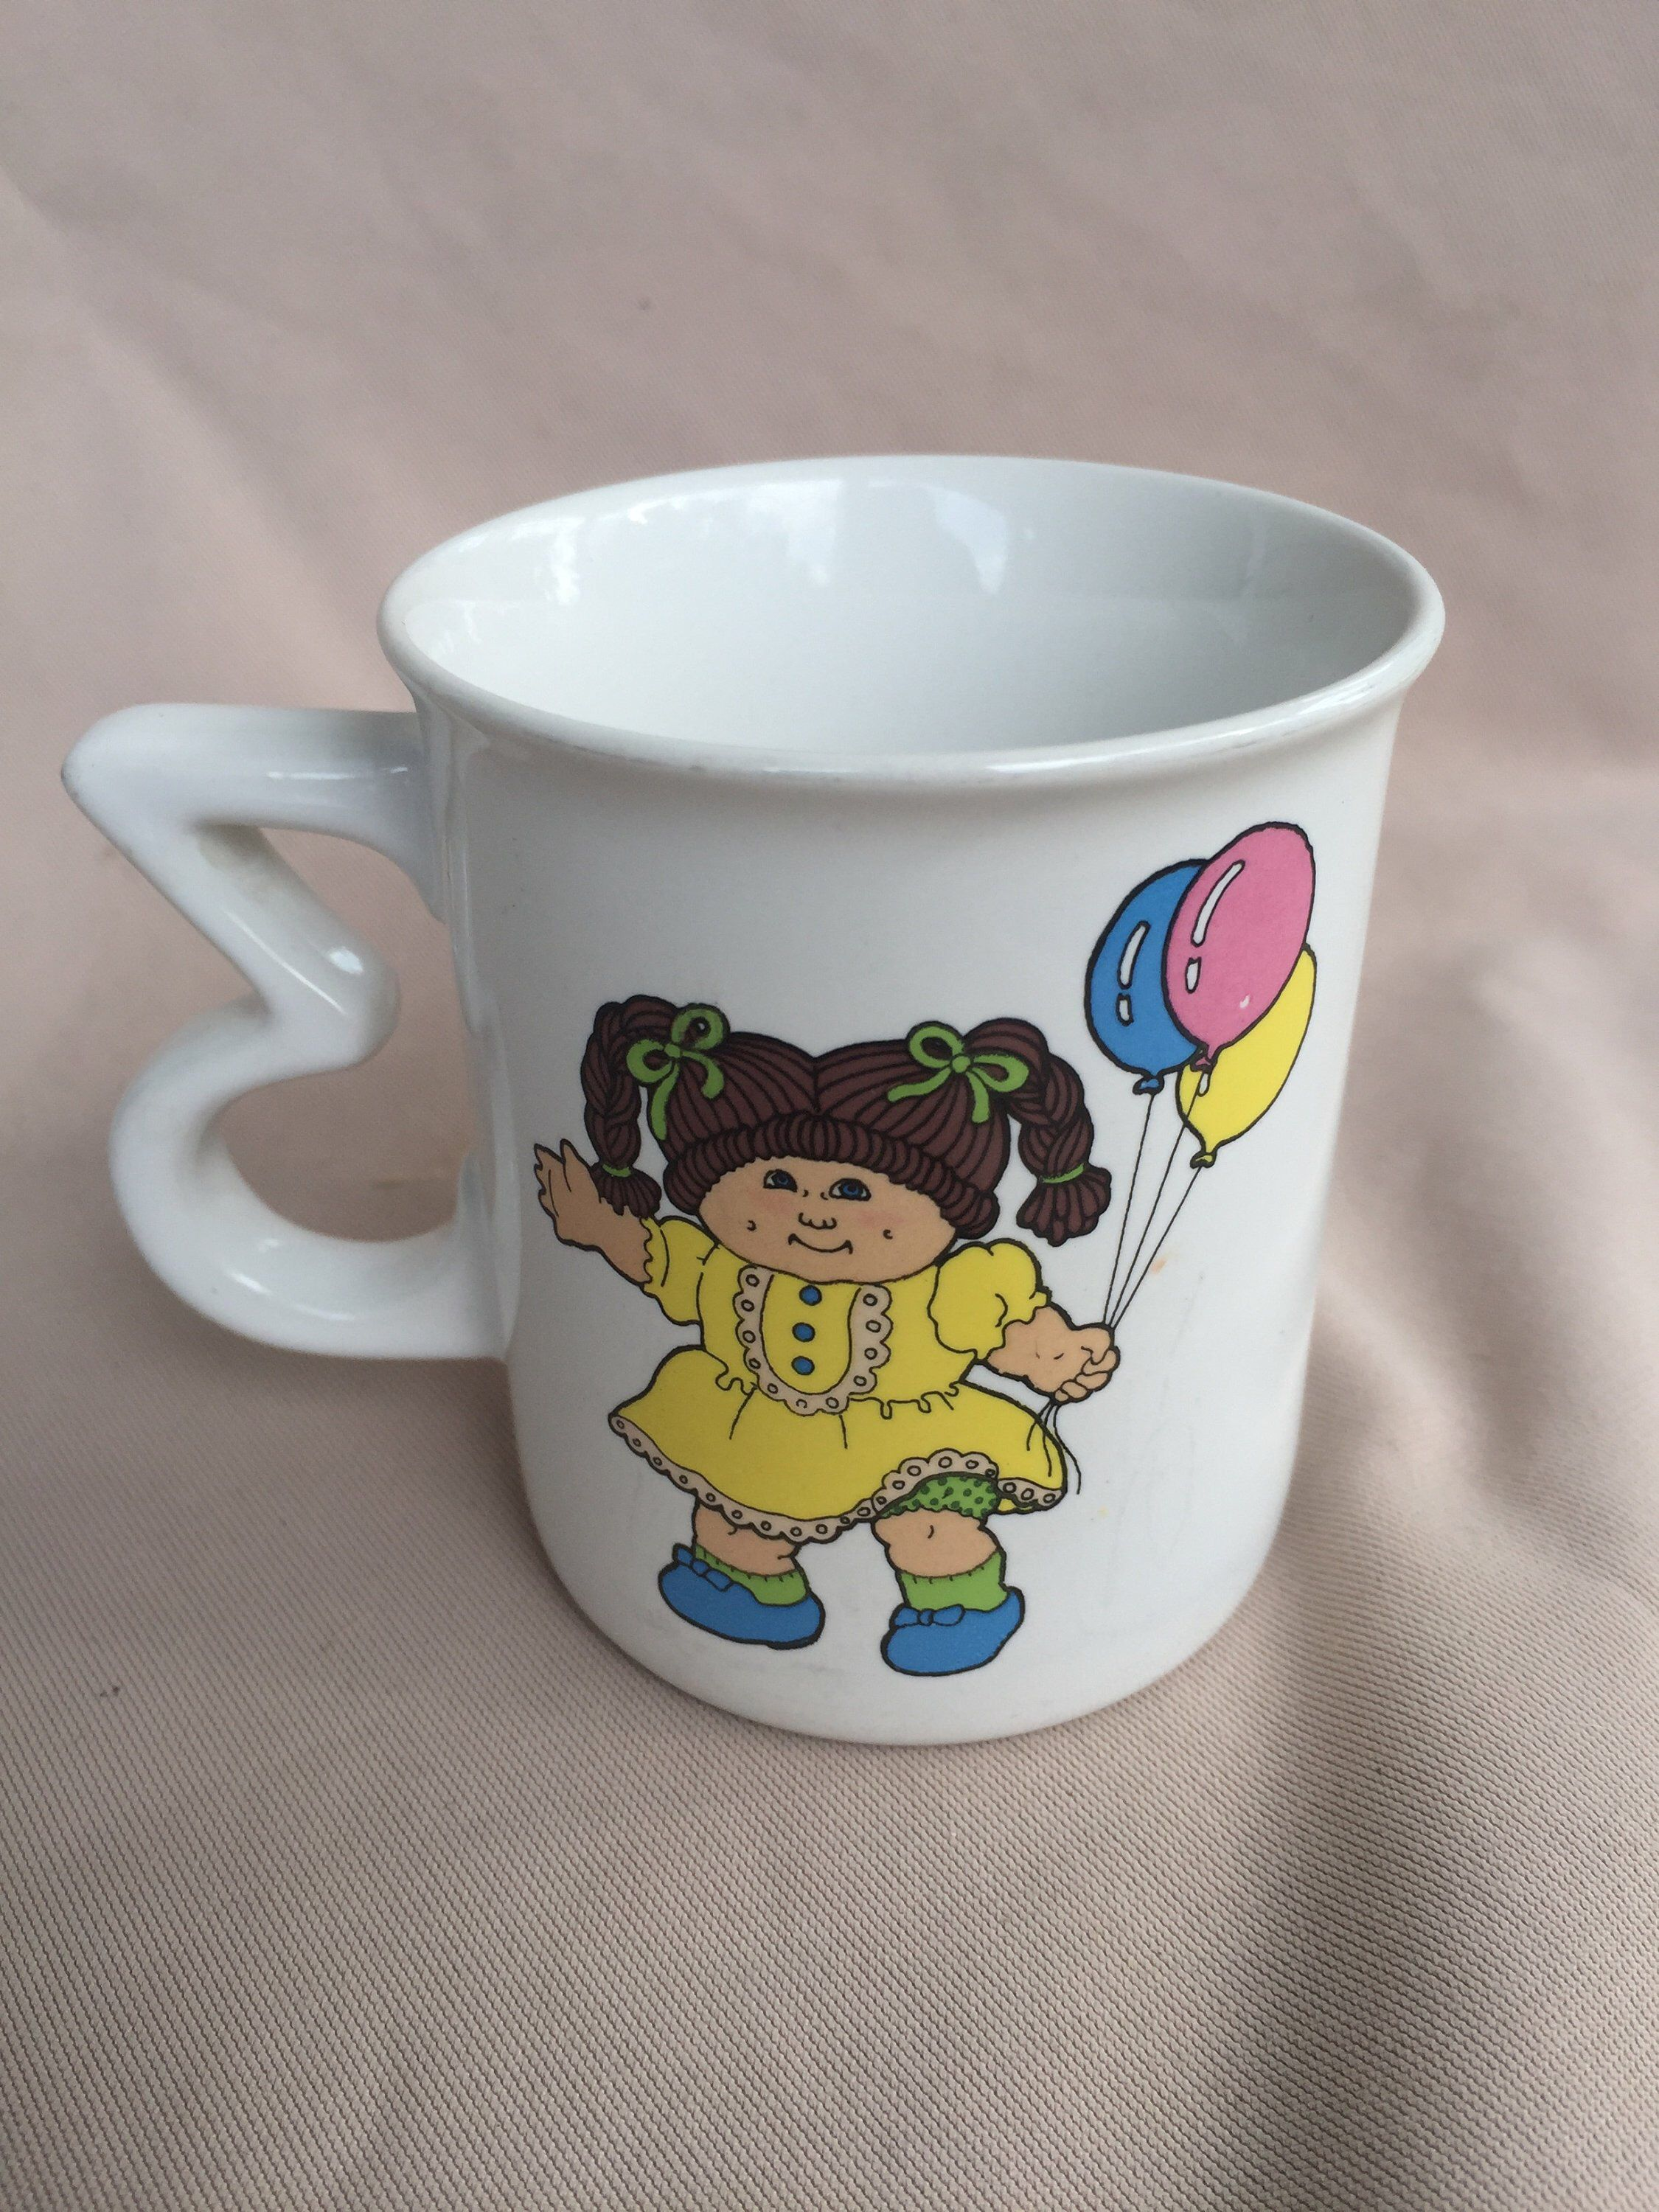 Pin By So Very Charming On Retro Vintage Vintage Cabbage Patch Dolls Cabbage Patch Kids Patch Kids